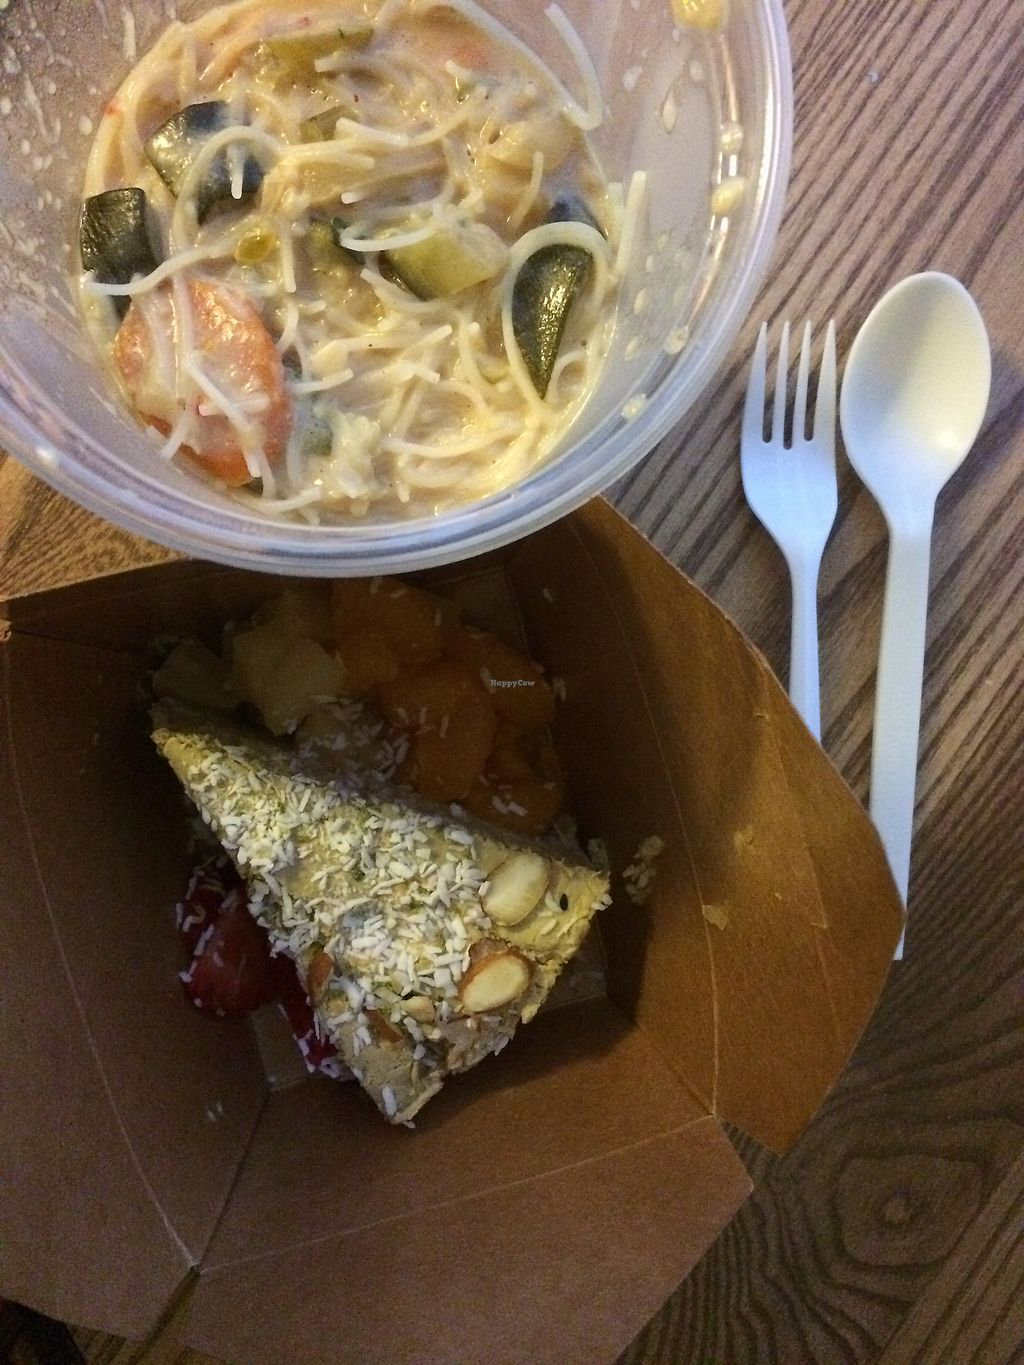 "Photo of Nourish Bistro  by <a href=""/members/profile/JenniferLees"">JenniferLees</a> <br/>takeout  <br/> June 24, 2017  - <a href='/contact/abuse/image/6744/272808'>Report</a>"